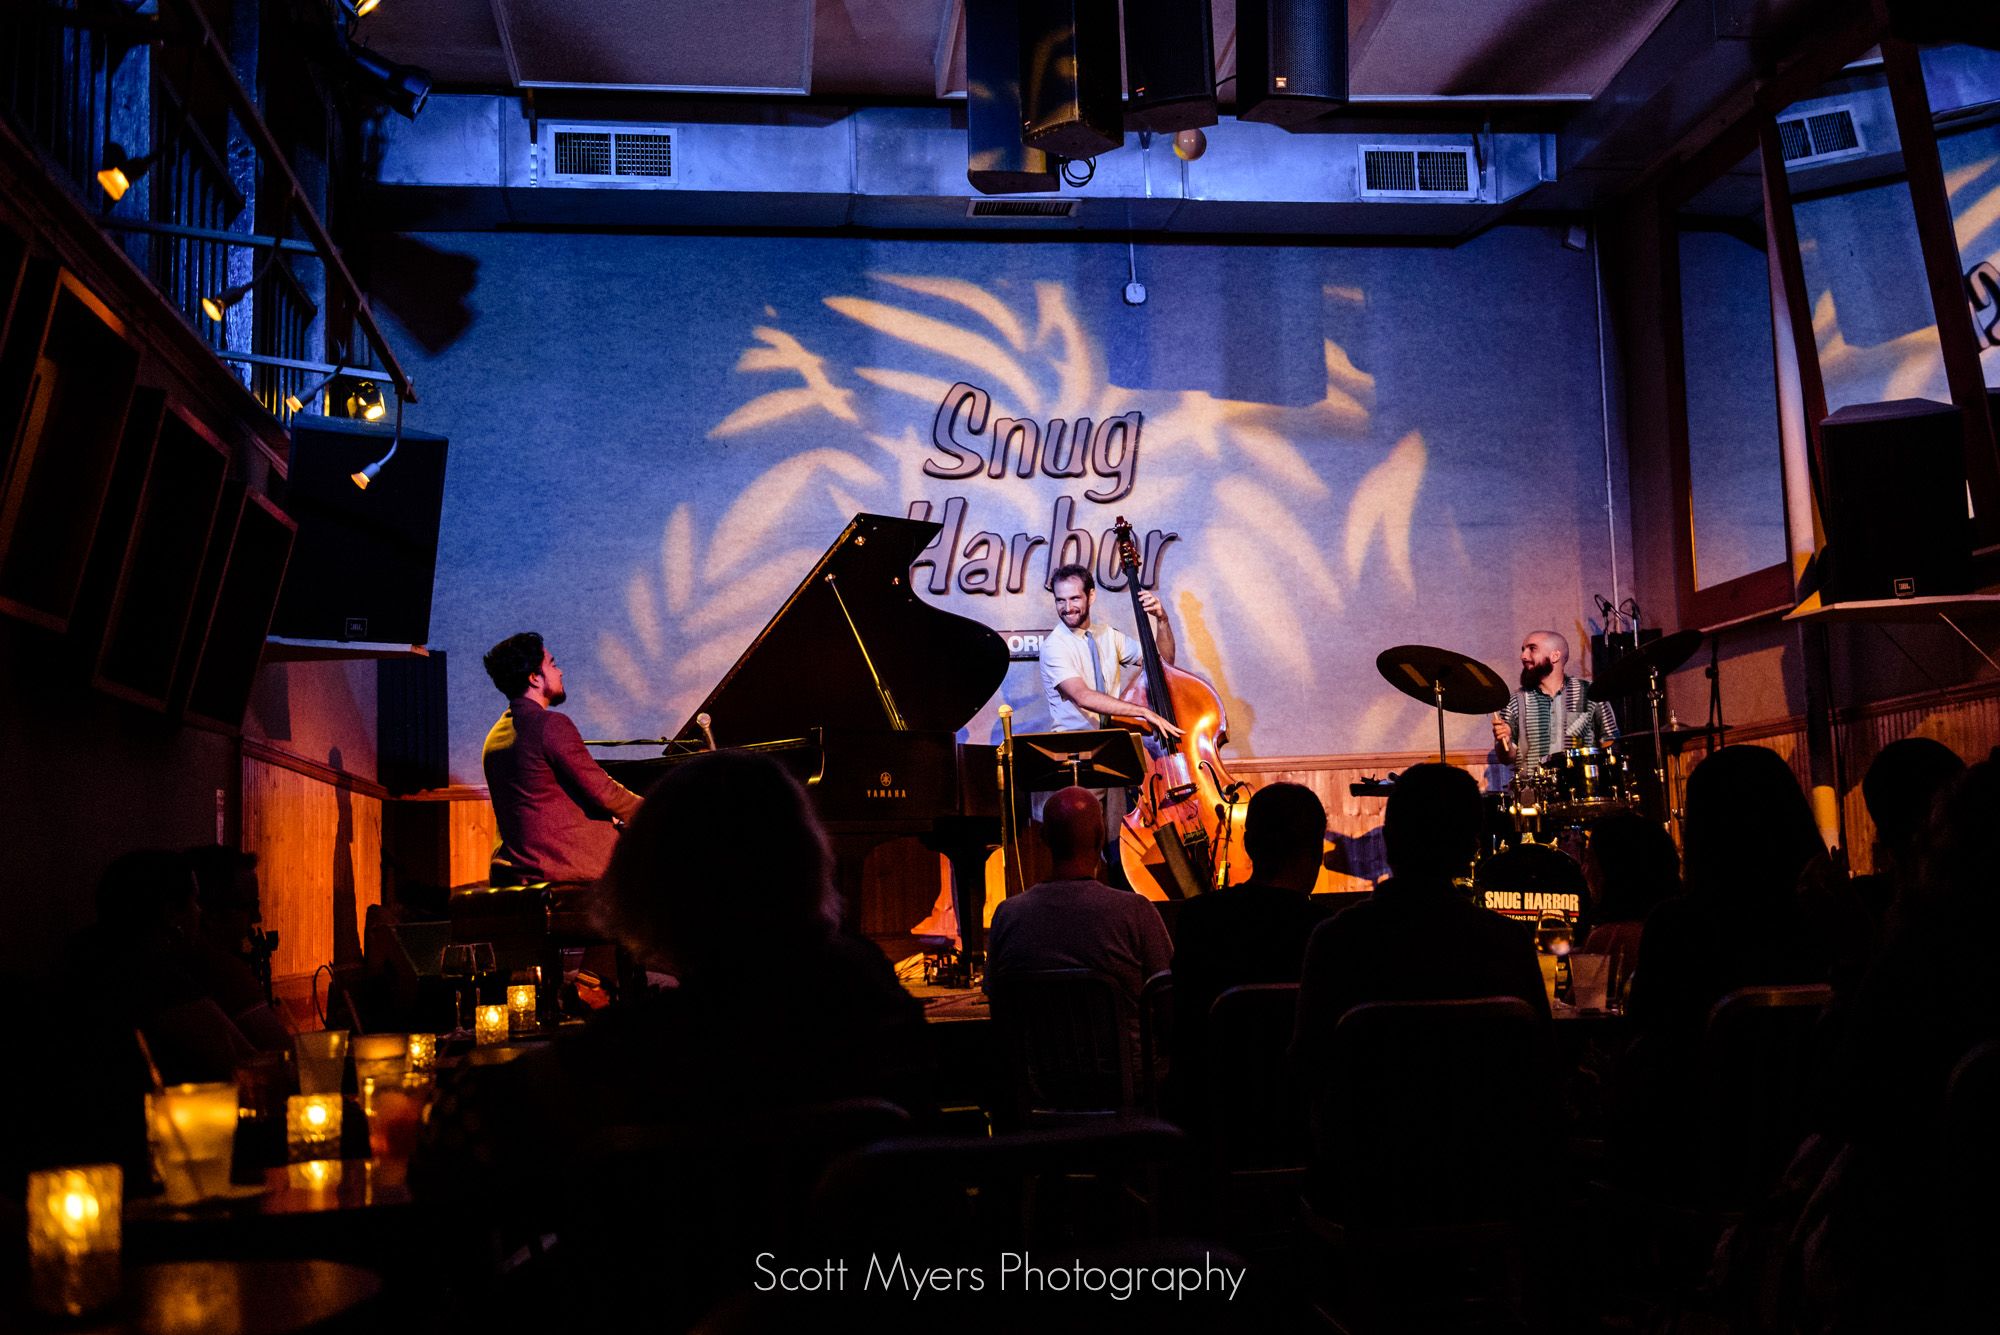 Extended Trio is Oscar Rossignoli, Brad Webb, Matt Booth.  Photographed live at Snug Harbor by Scott Myers